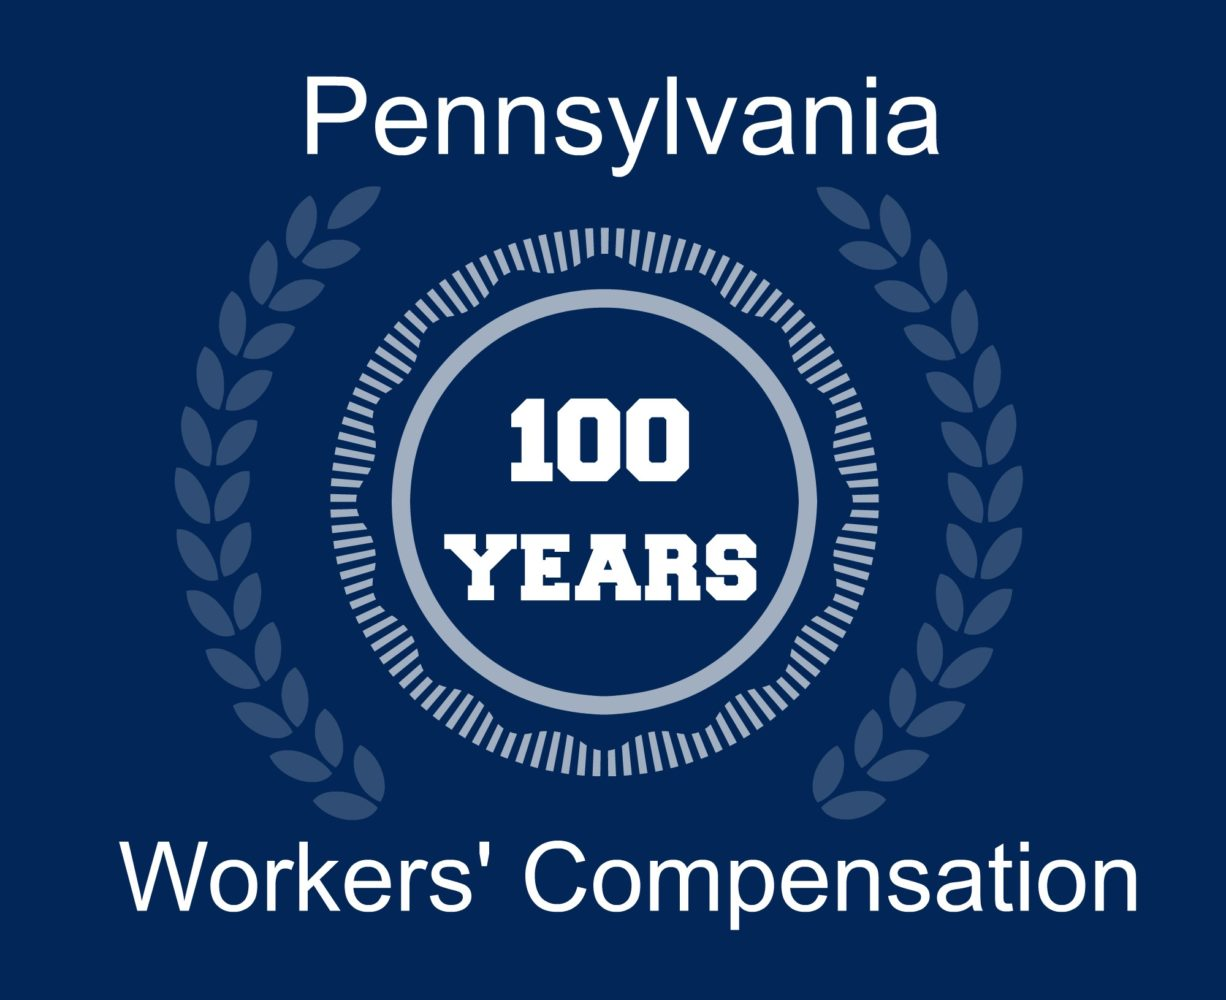 compensation ch 1 Compensation handbook brings clarity to this complex area of law this portable reference is a handy reference for workers' compensation practitioners and judges, claims adjusters, medical providers and vocational rehabilitation ch 1 overview of the workers' compensation system ch 2 workers' compensation.